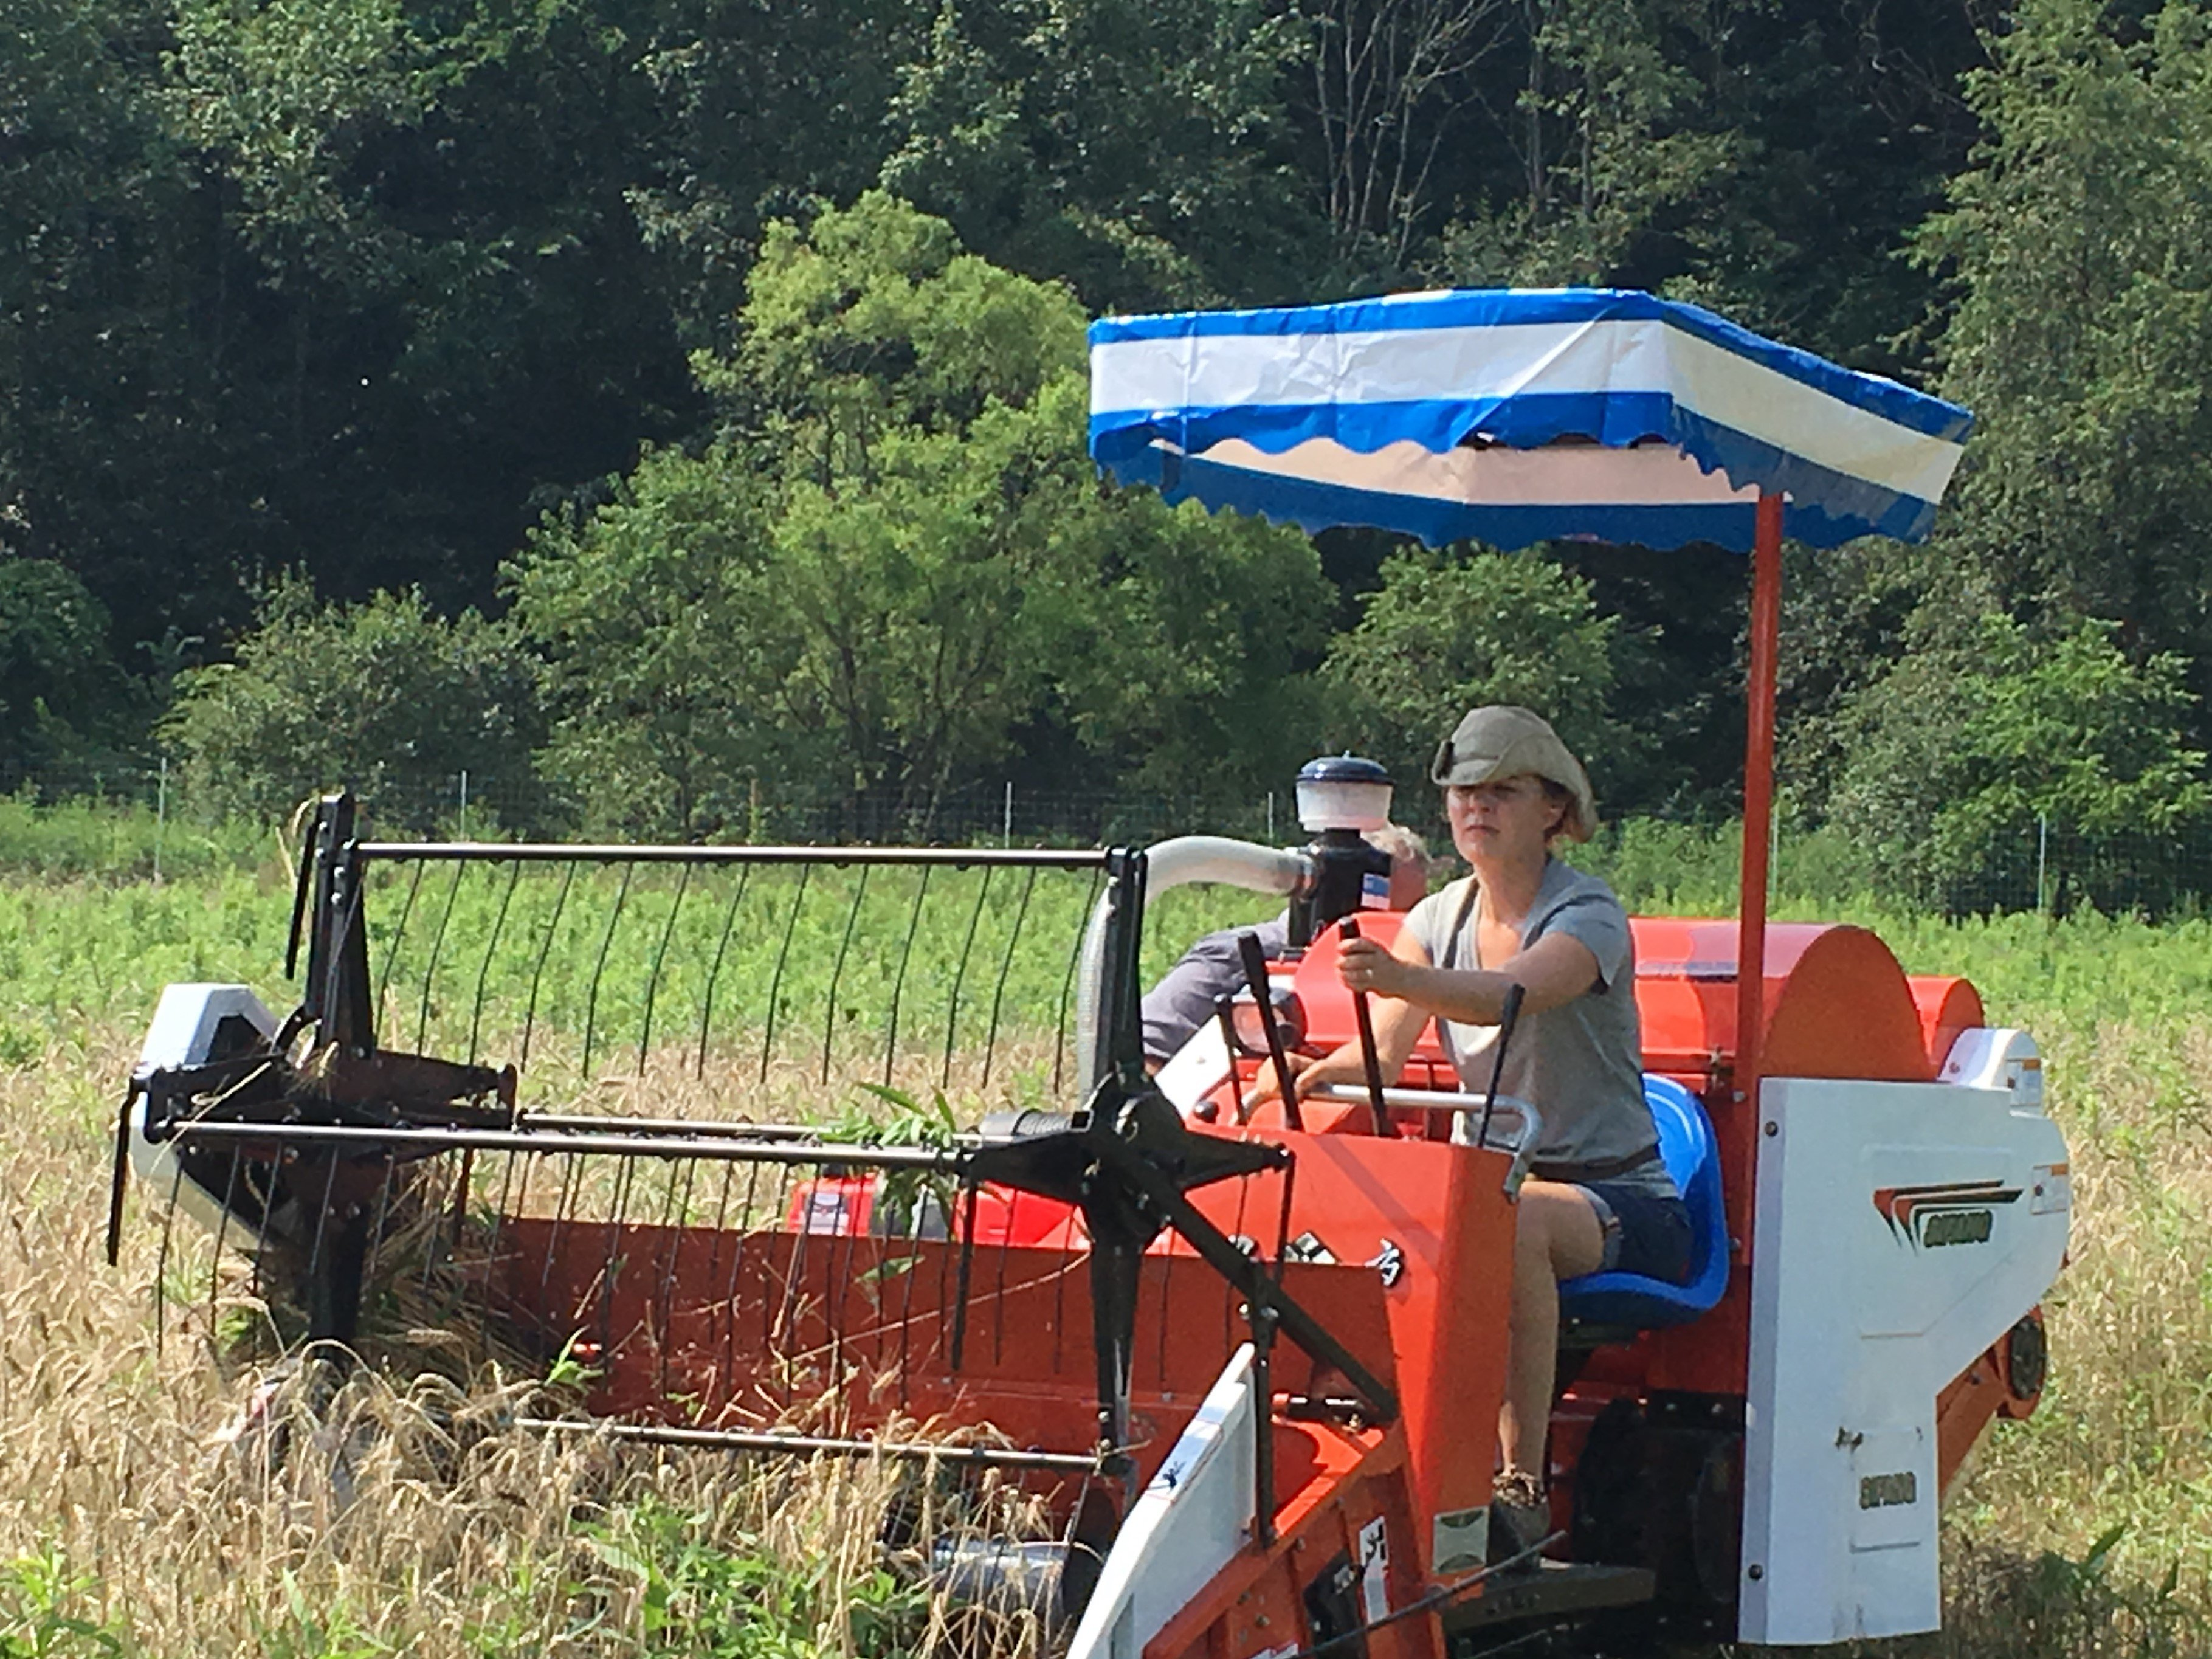 Previous Happening: Rivendale Farms CSA Newsletter, Week 4 (July 3)